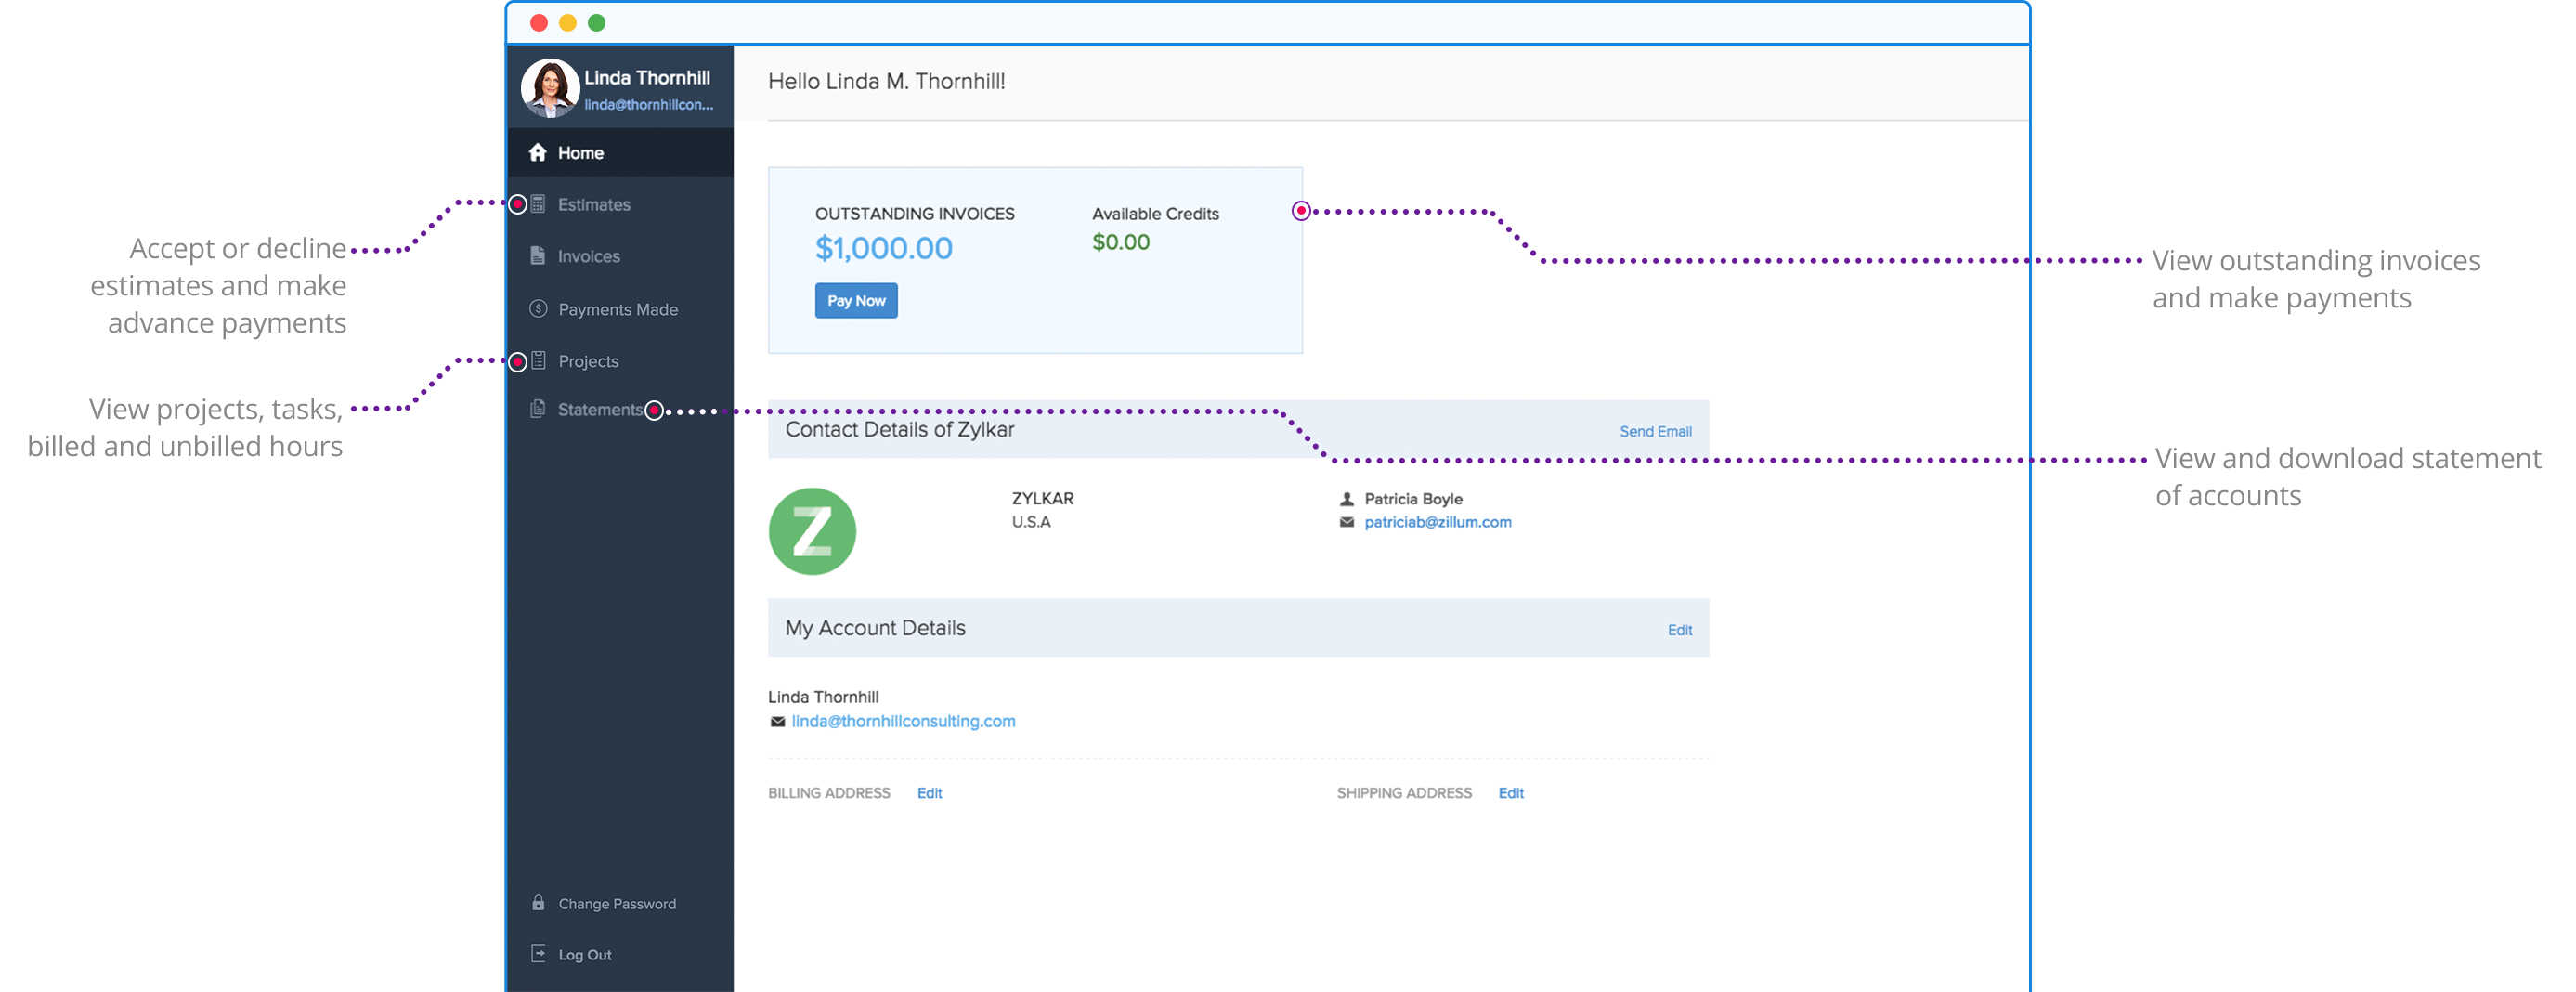 Client Portal for Customers | Zoho Invoice